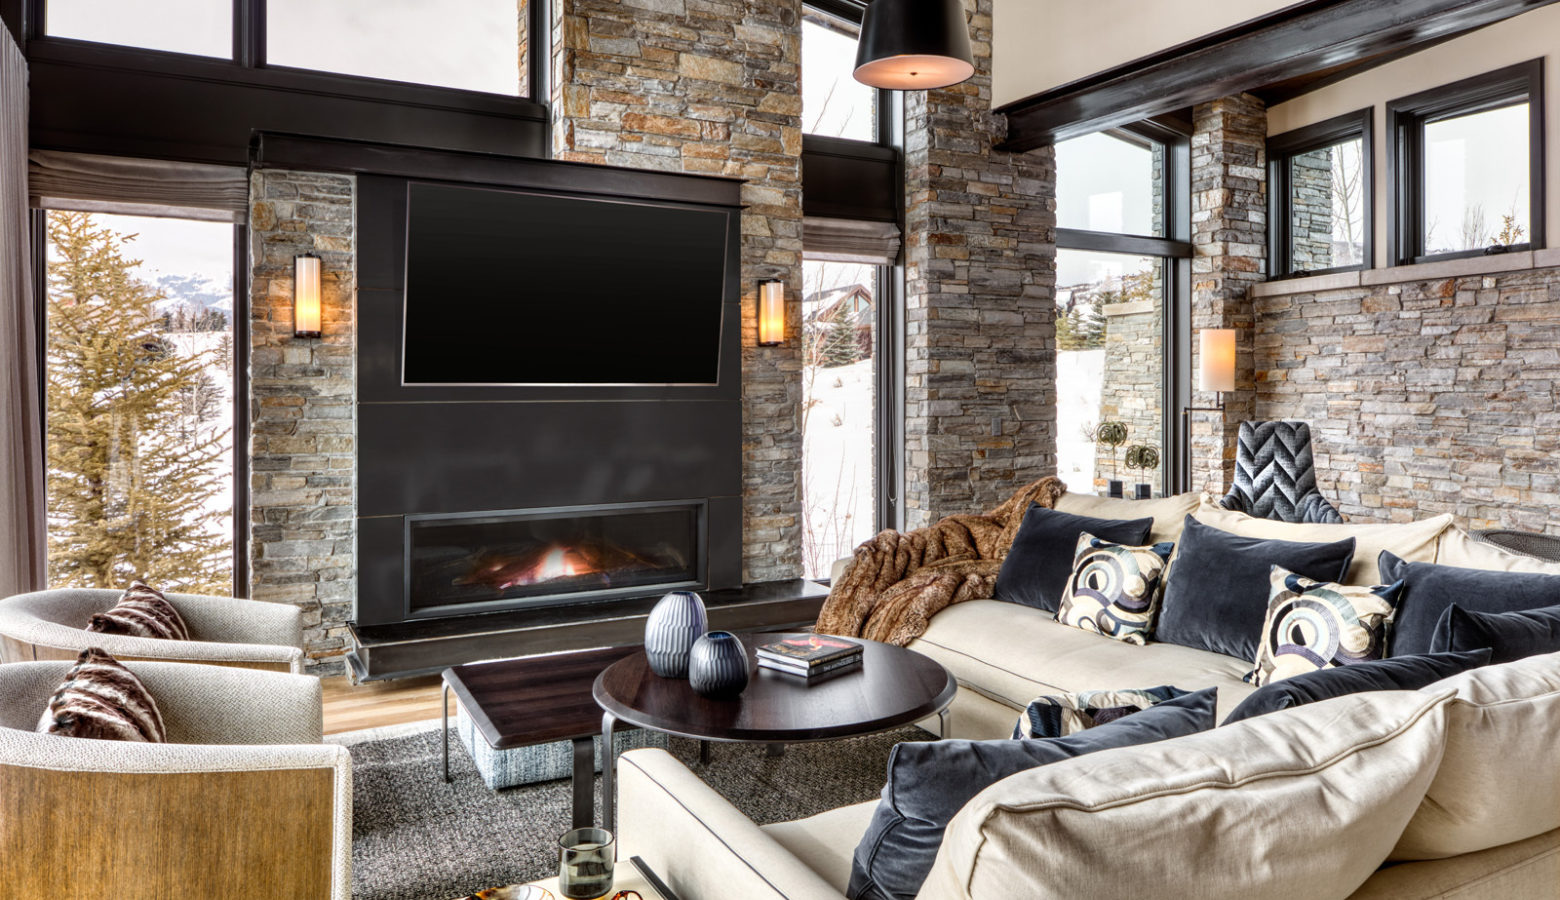 Attention to Details: 6 Residential Architecture and Interior Design Ideas that Make a Difference